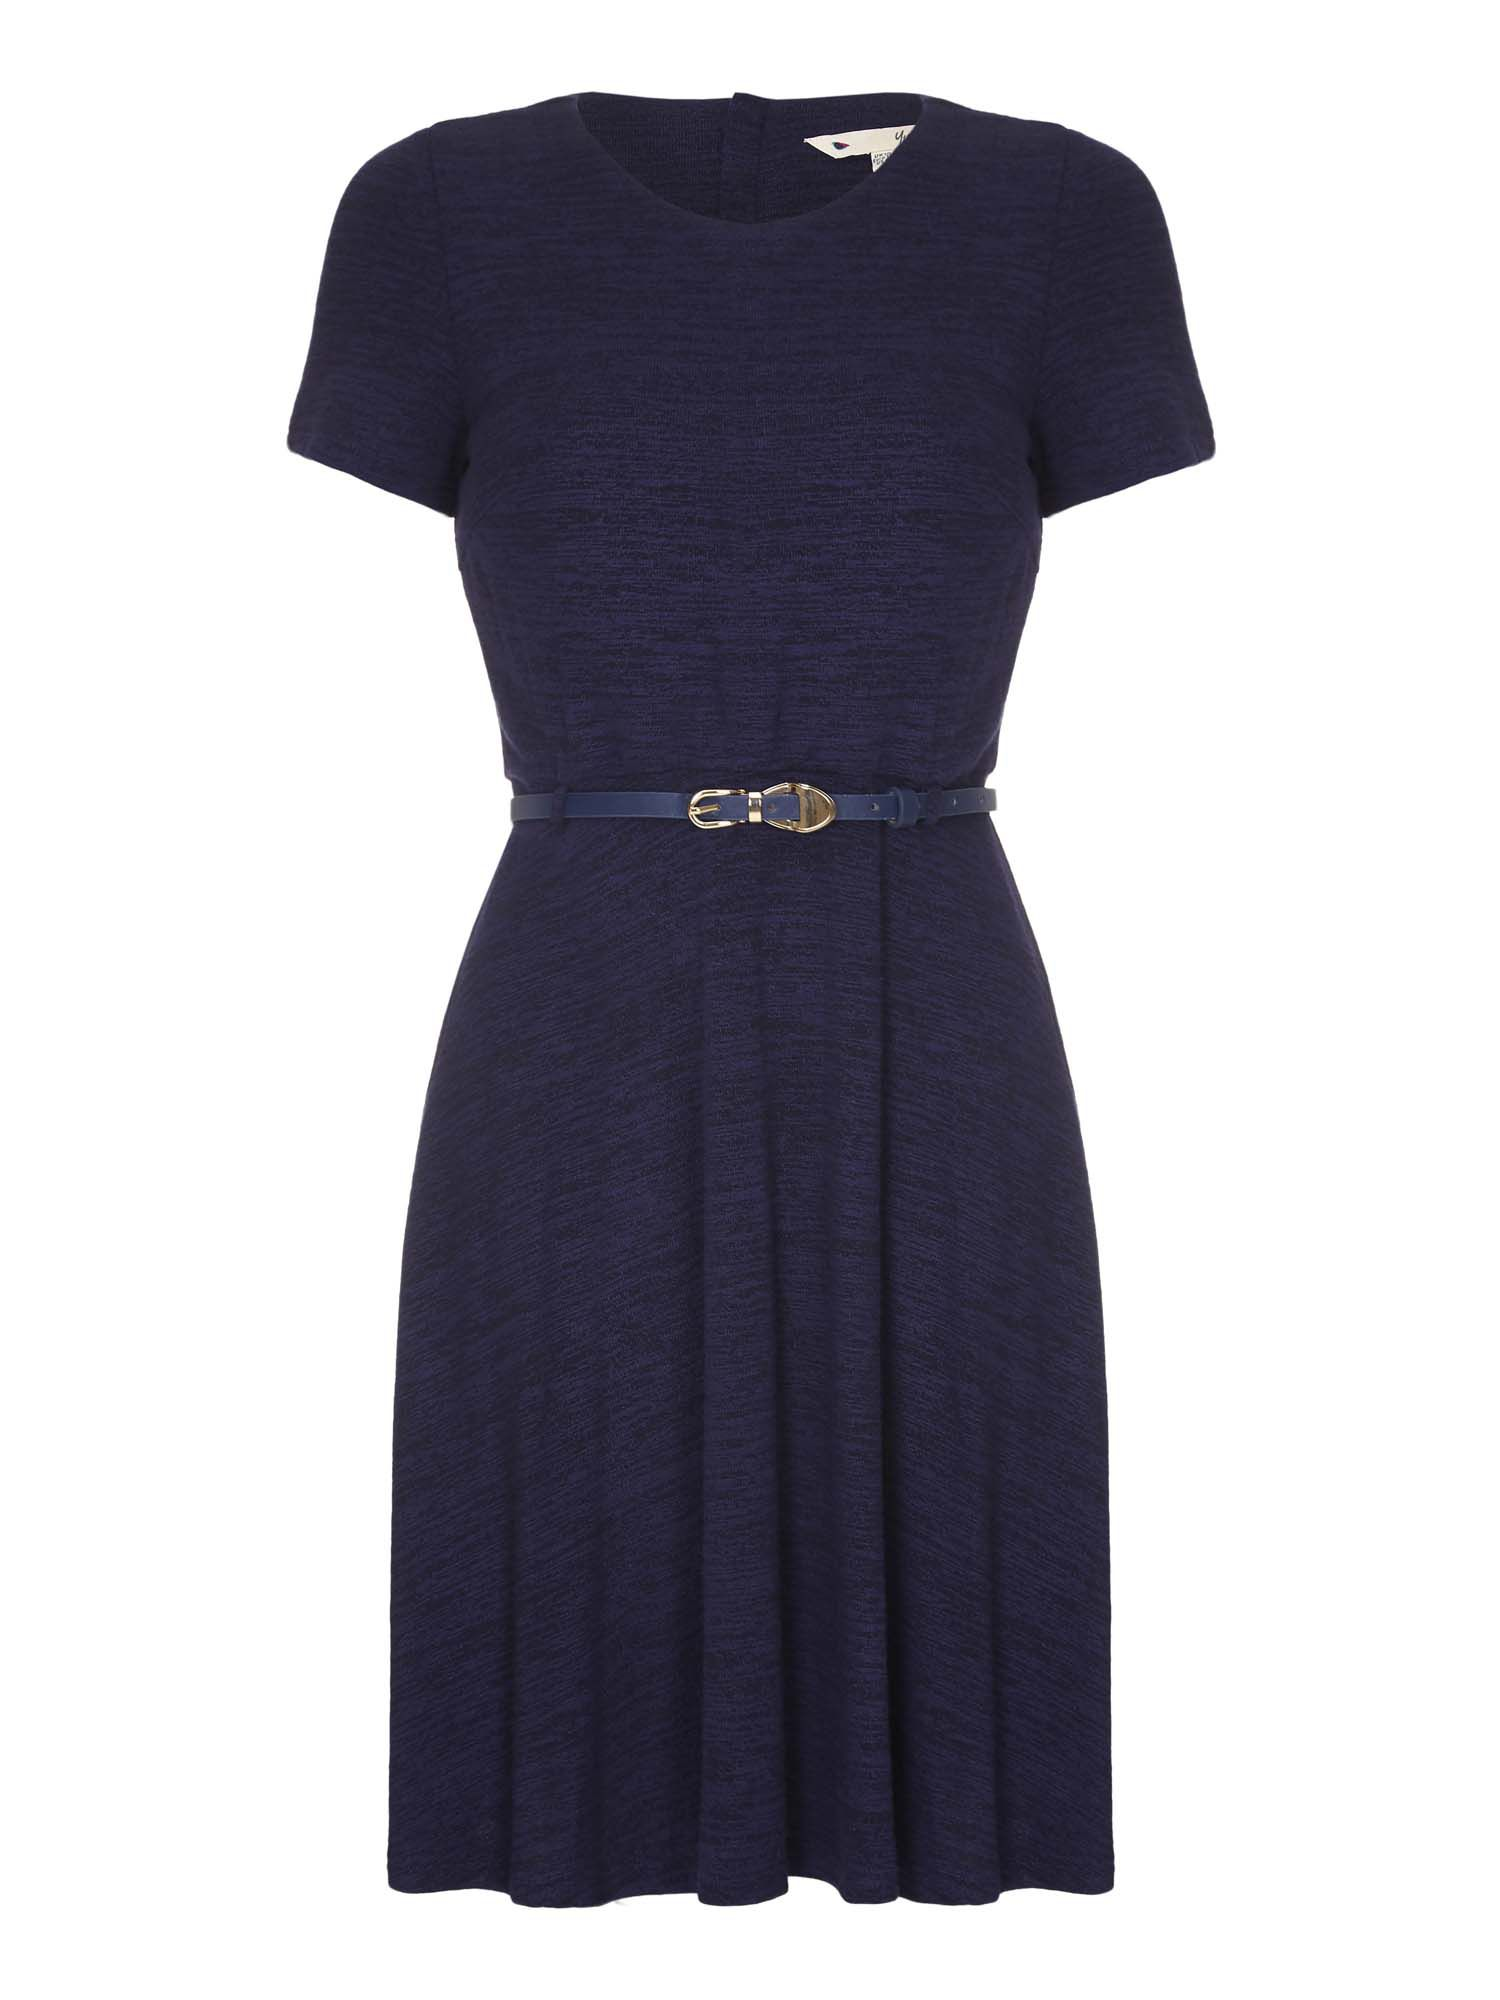 Yumi Belted Short Sleeve Dress, Blue